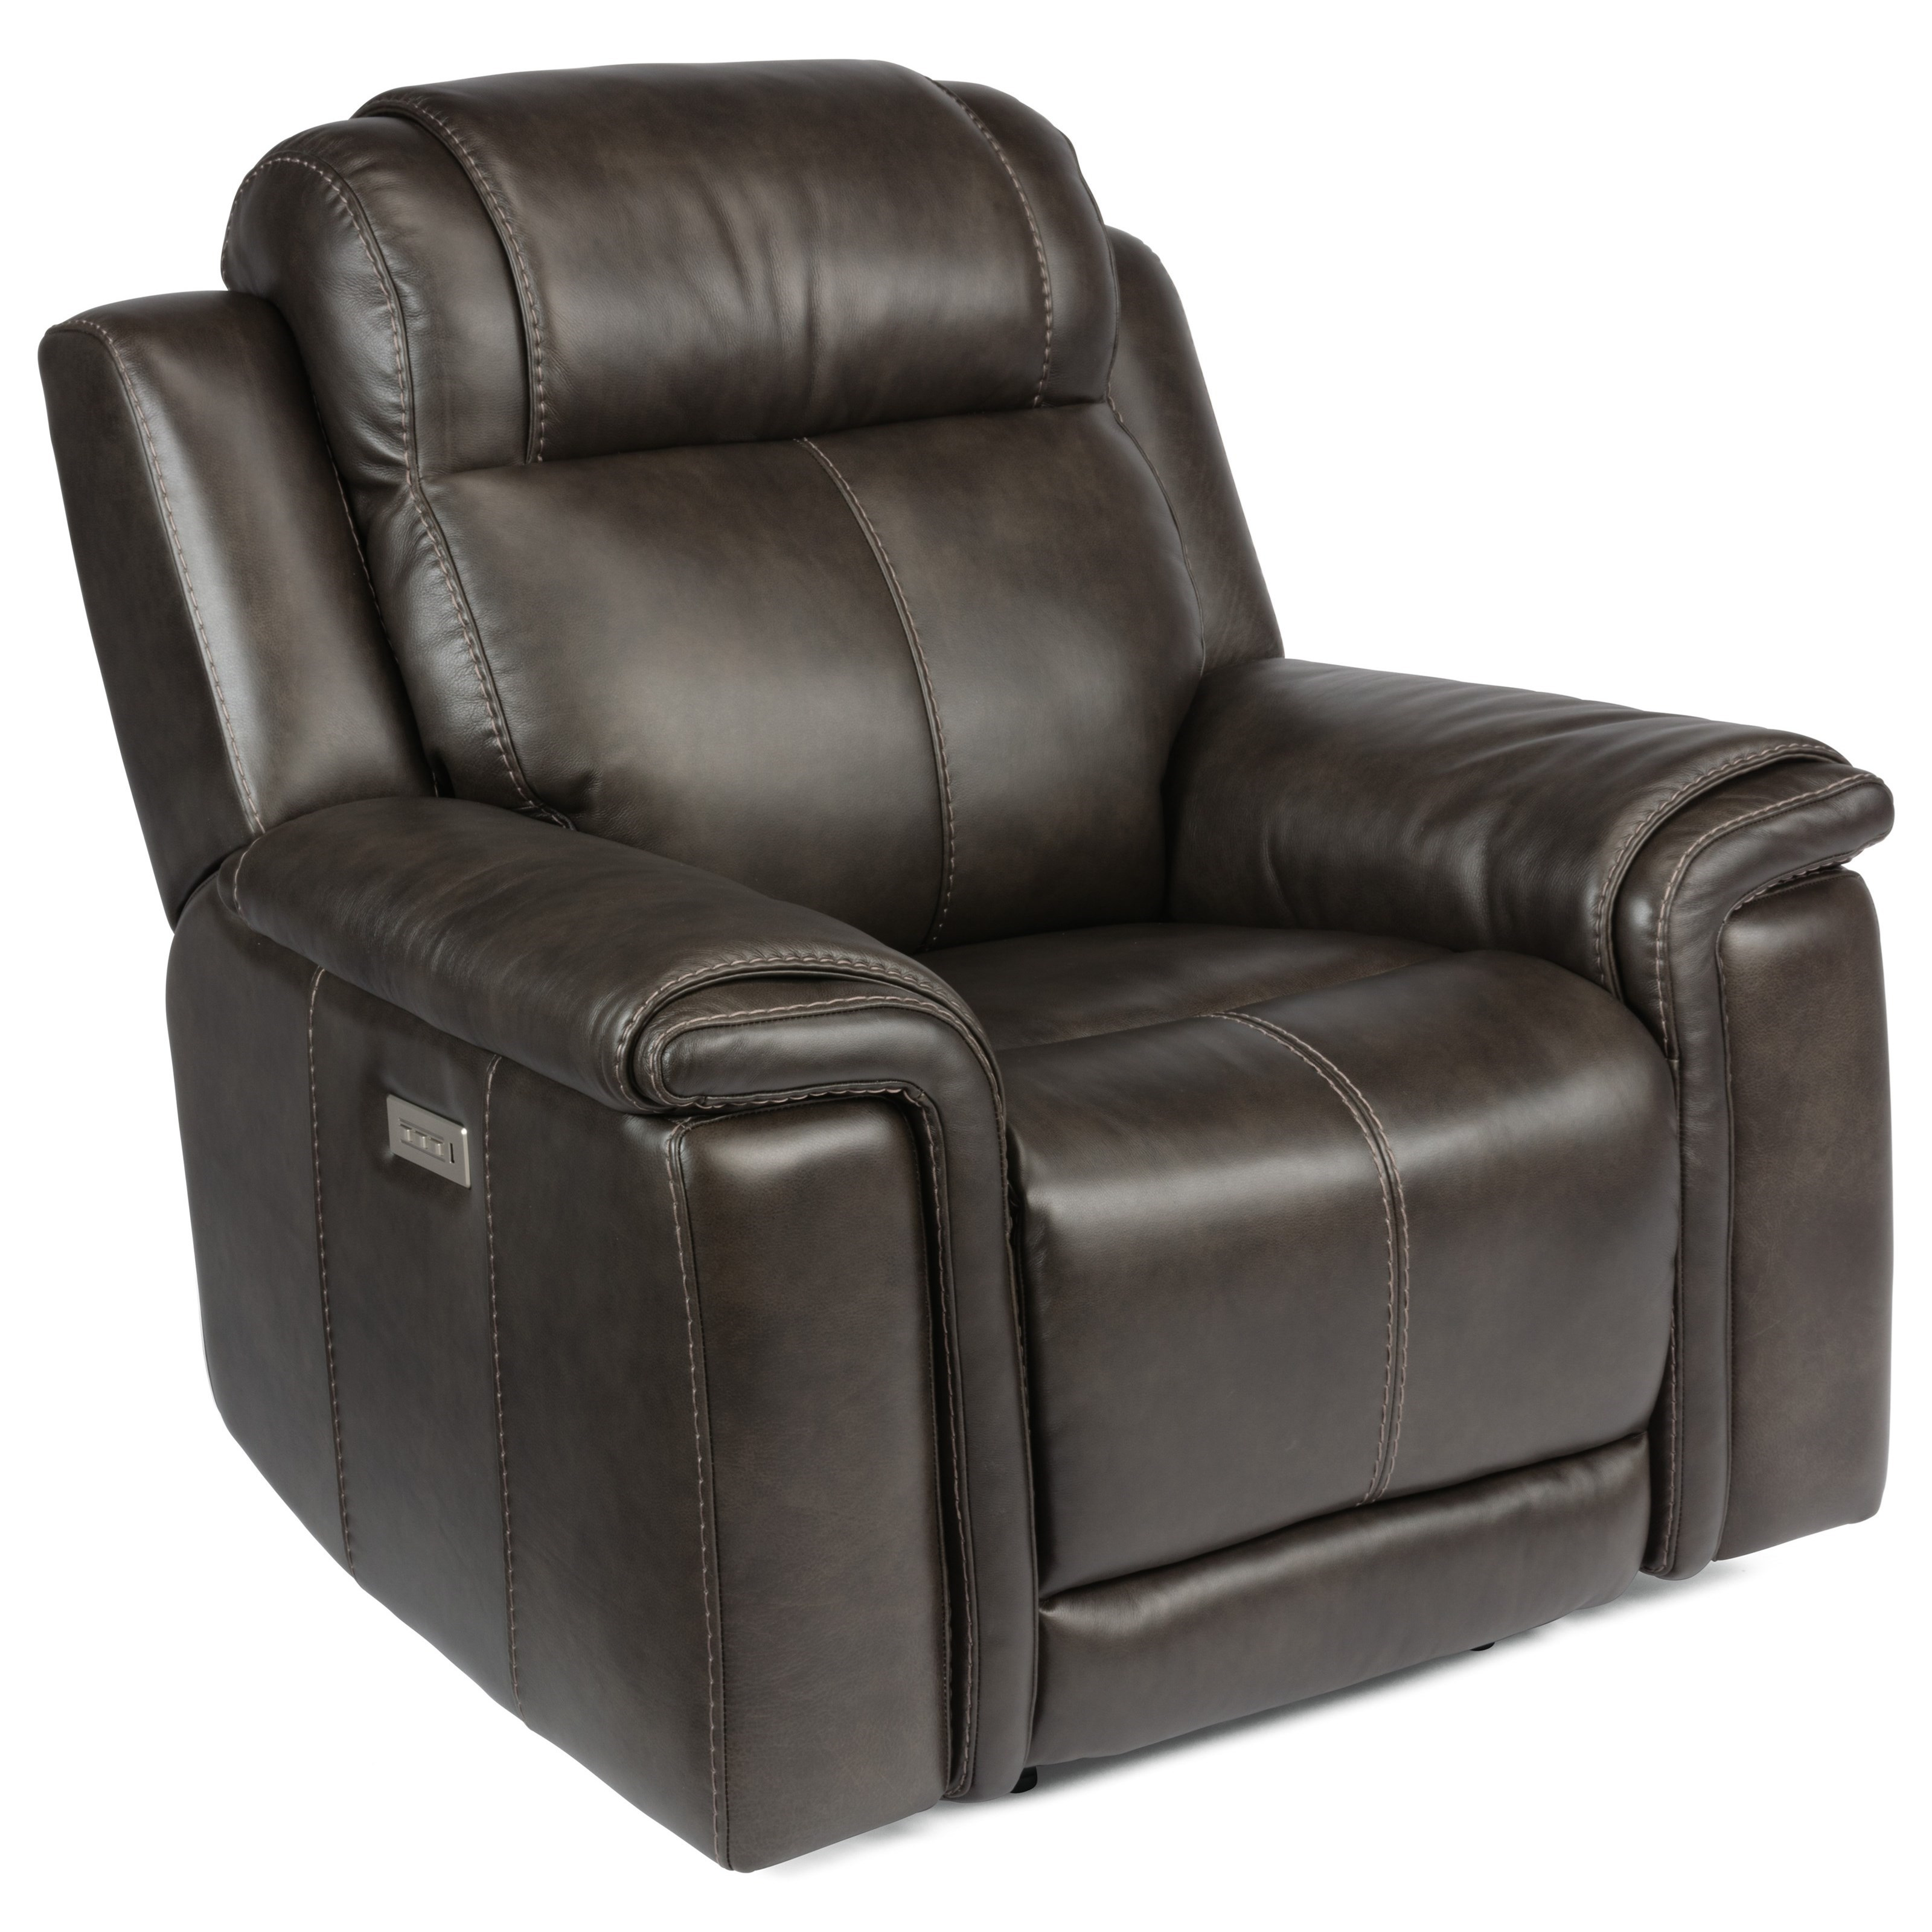 Latitudes - Kingsley Lay-Flat Power Recliner by Flexsteel at Walker's Furniture